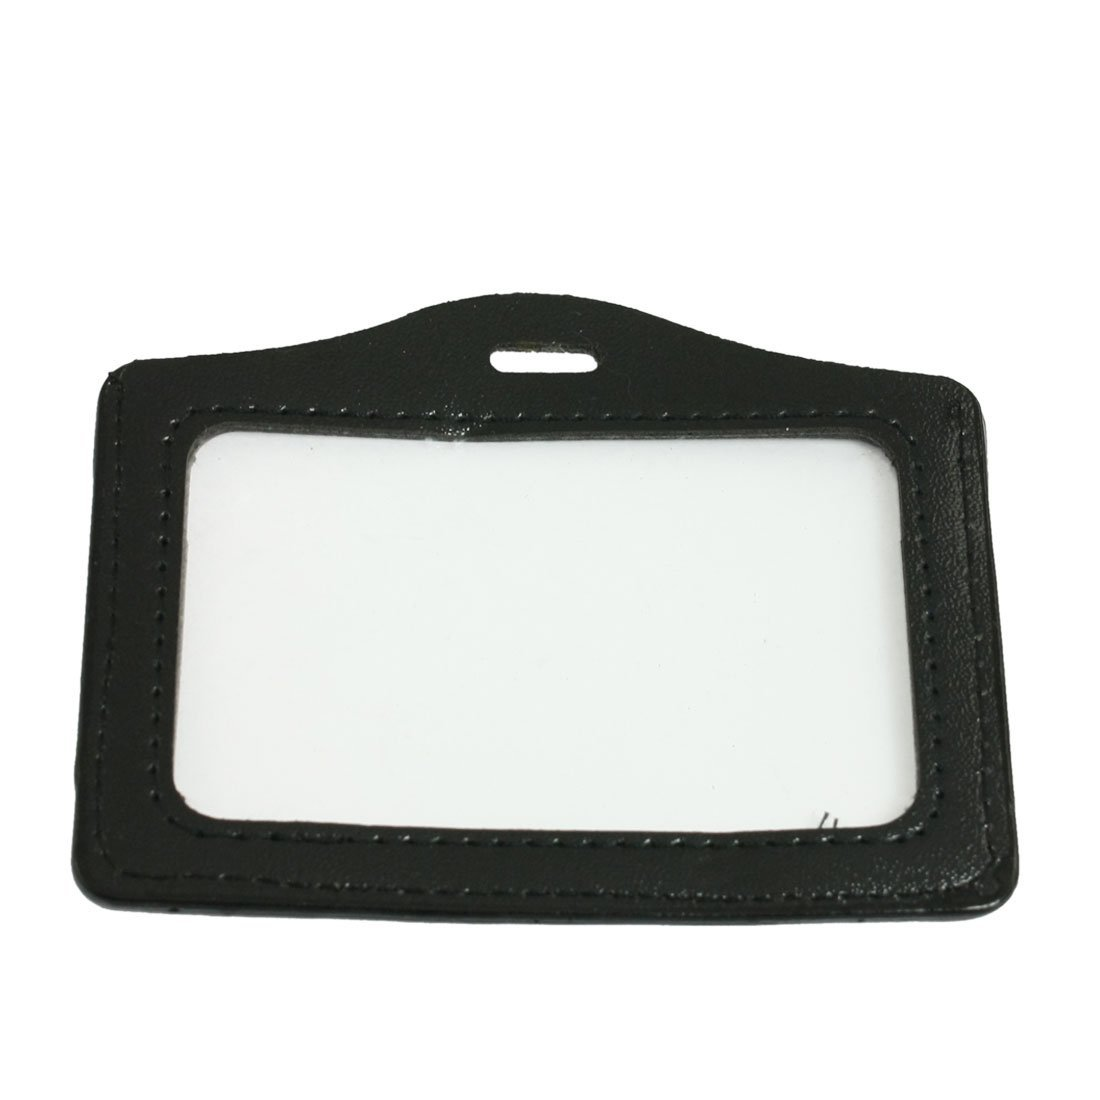 TEXU 5 Pcs Black Clear Faux Leather Business ID Card Badge Holder(China (Mainland))